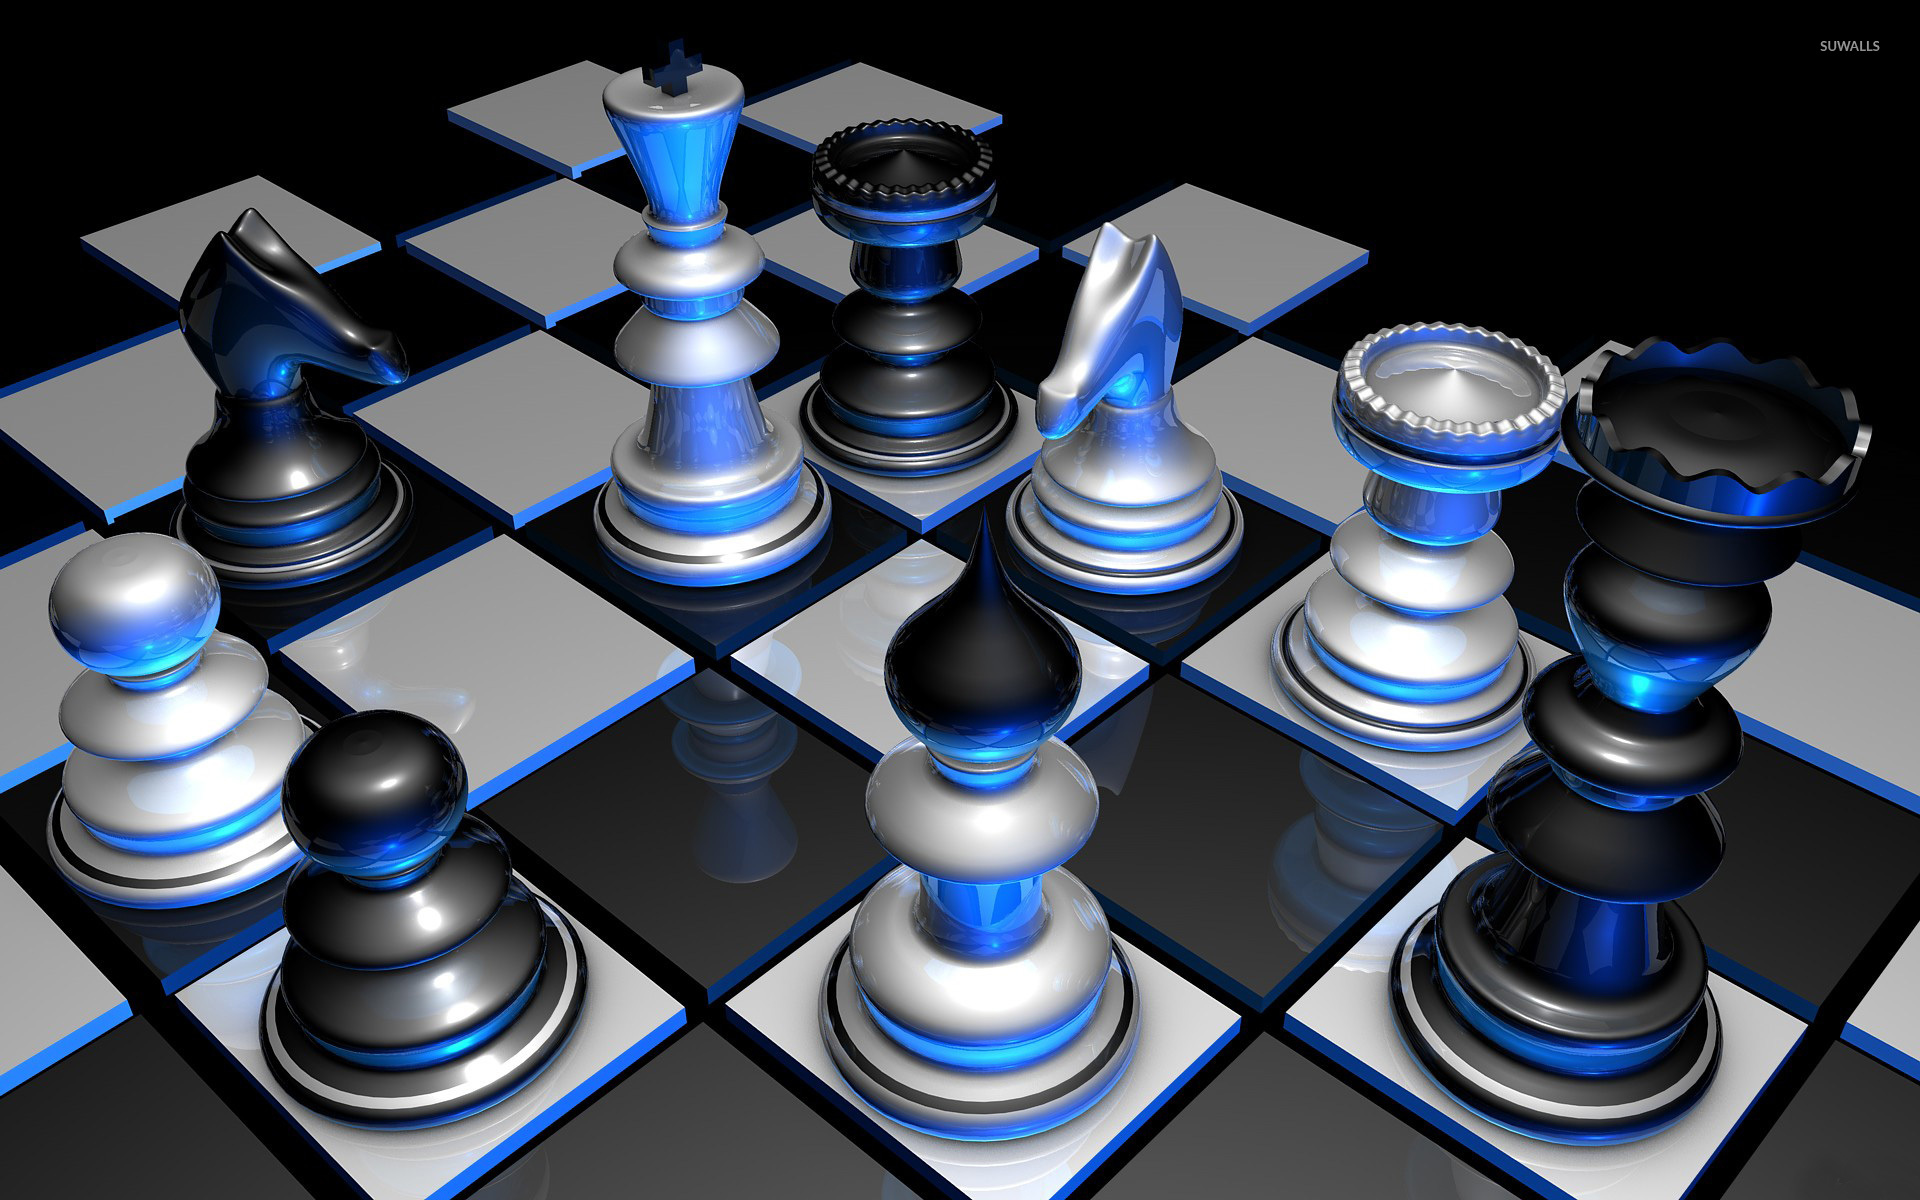 Chess wallpaper 3d wallpapers 6019 for 3 dimensional wallpapers 3d